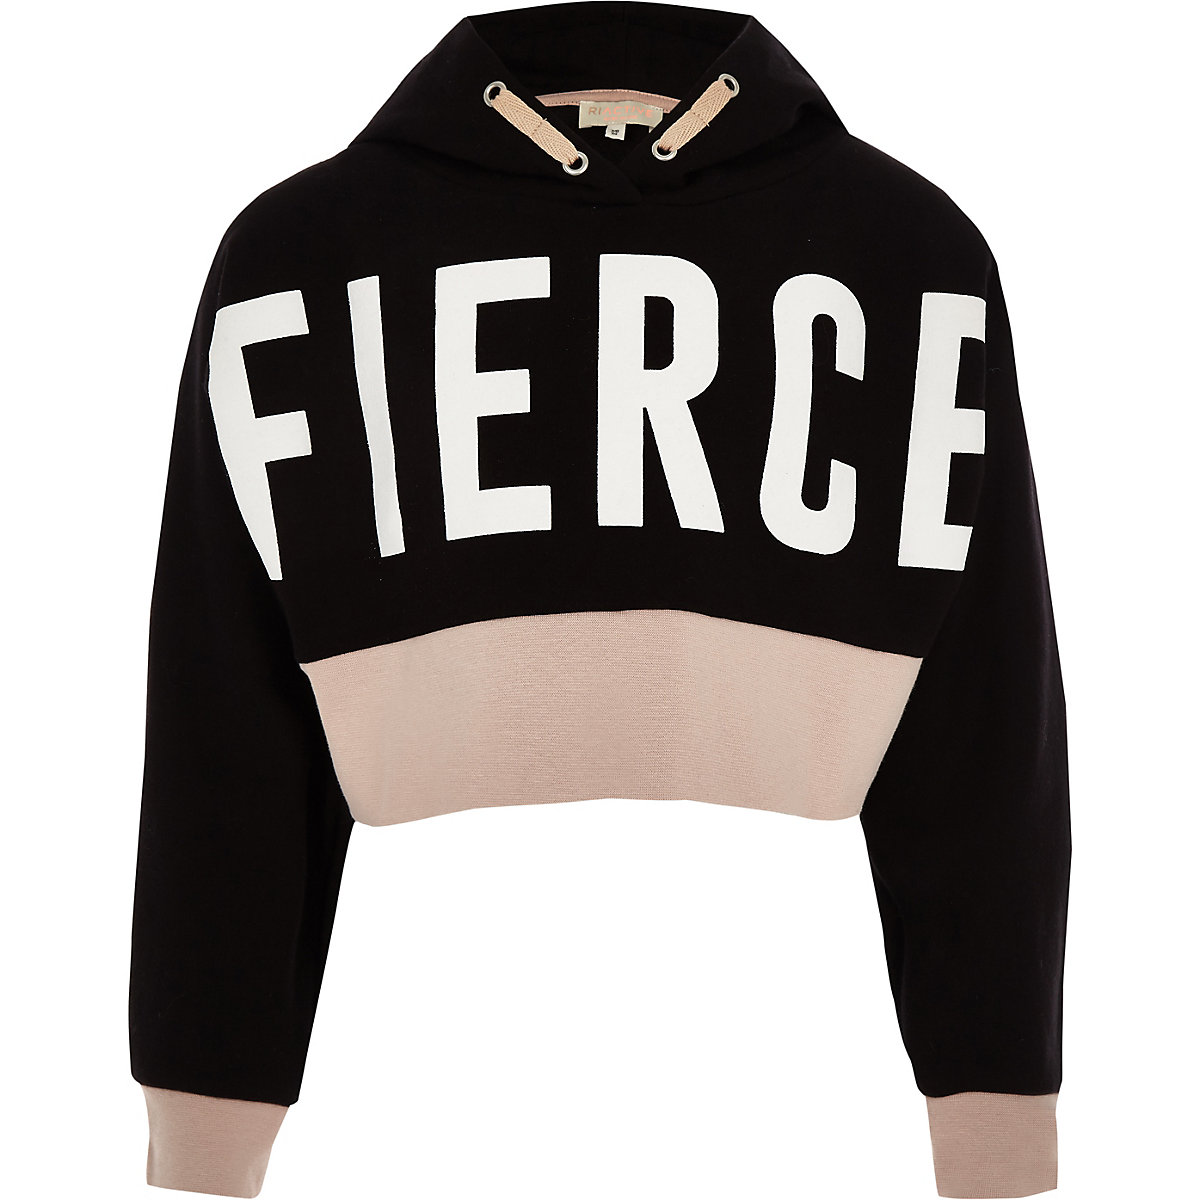 Girls RI Active black 'Fierce' hoodie